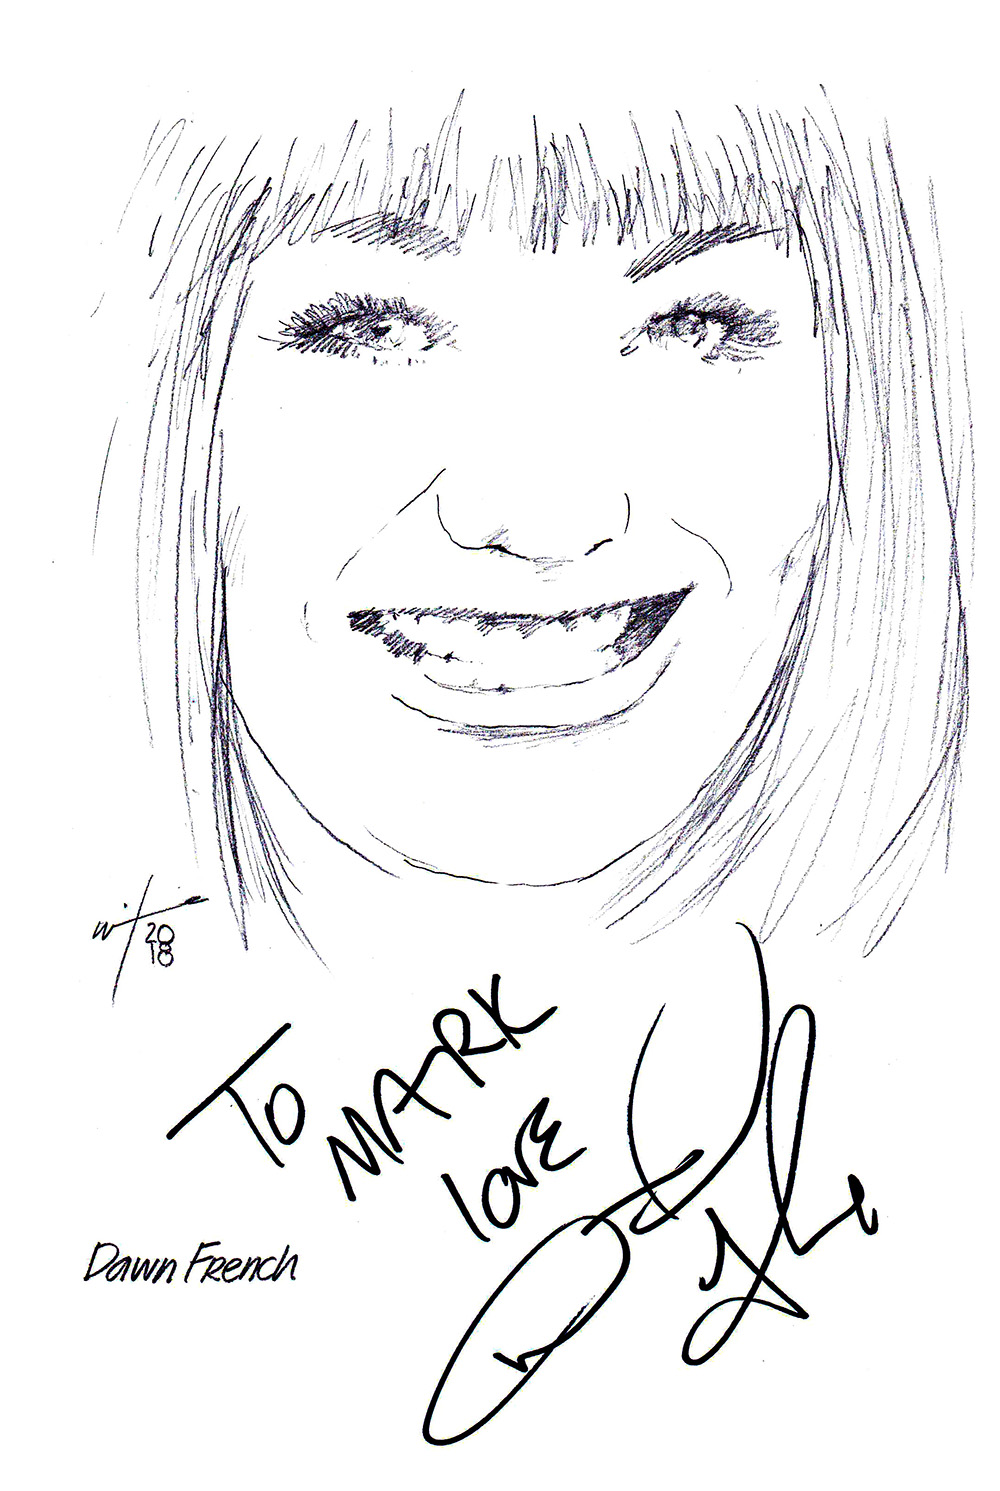 Autographed drawing of Dawn French